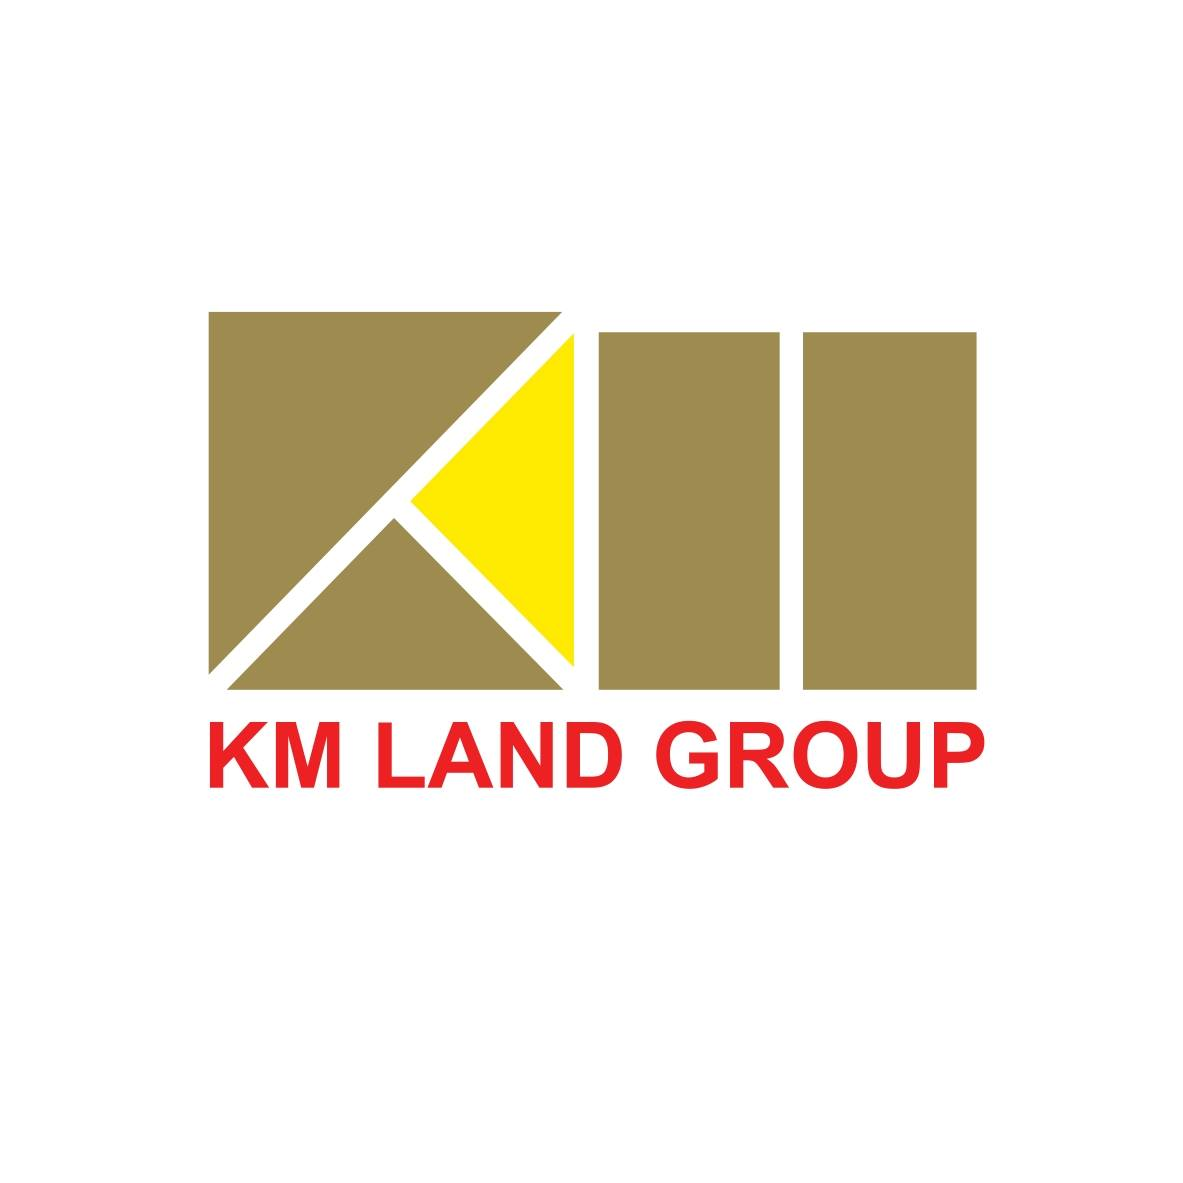 Developed By KM Land Group